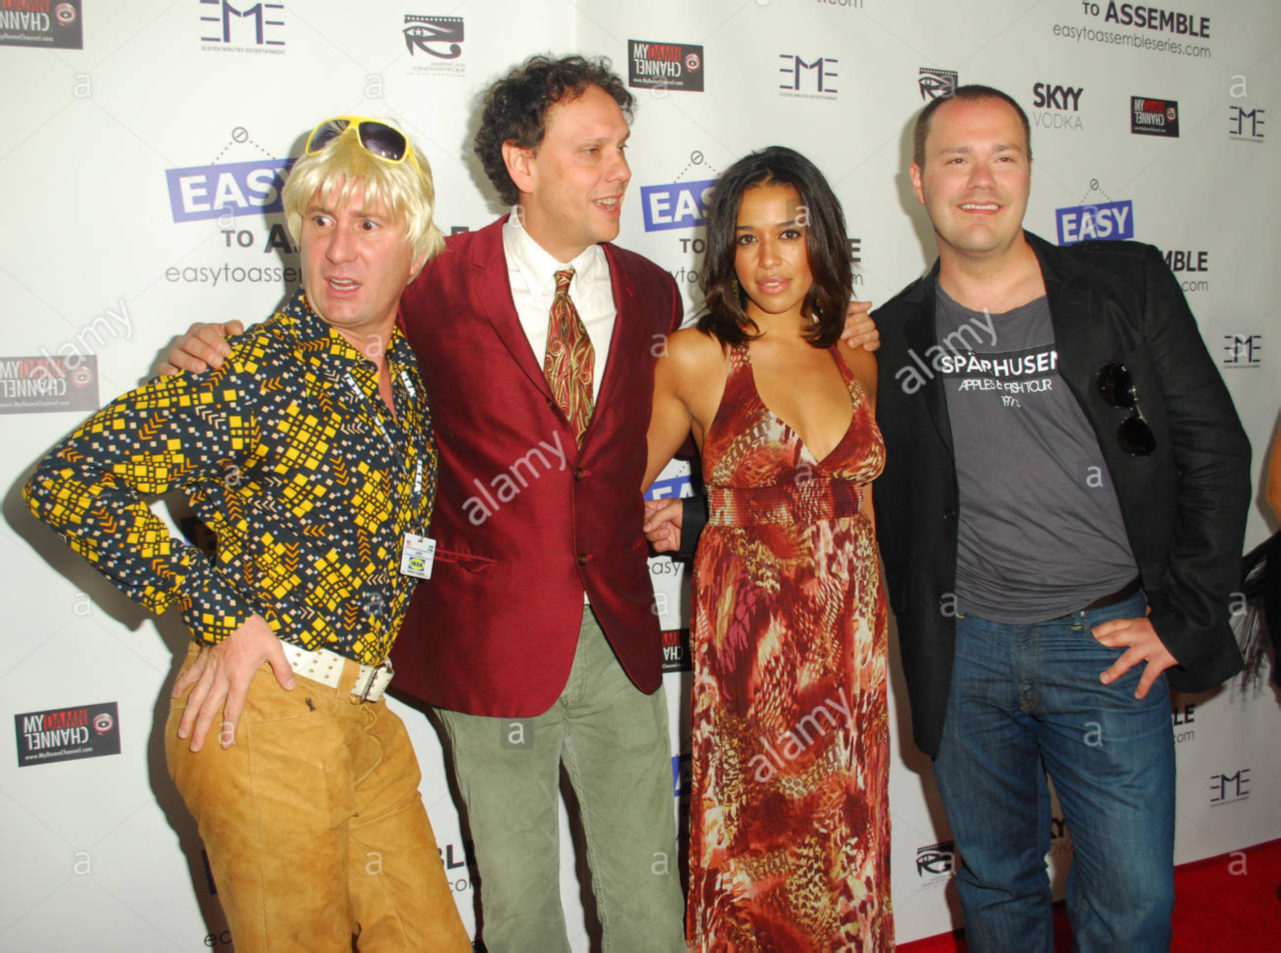 Michael Irpino, Todd Spahr, Ogy Durham, Wilson Cleveland at the Easy to Assemble Season 2 premier